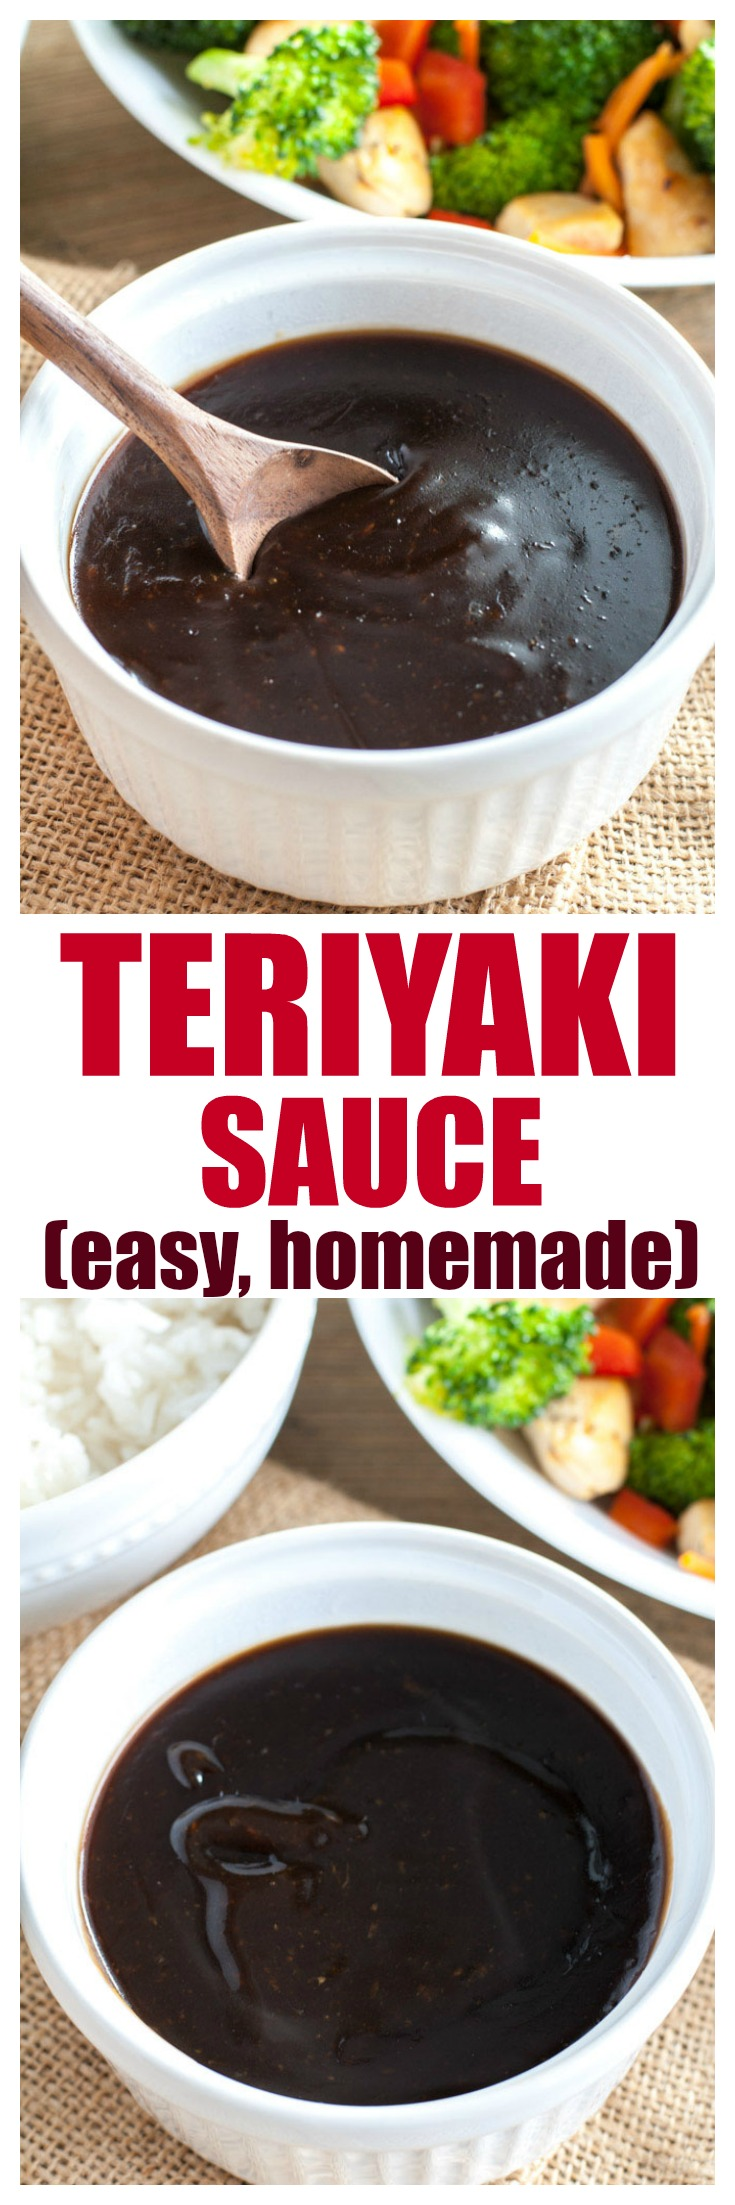 Teriyaki Sauce is easy to make at home with a few simple ingredients. This flavorful sauce can be used to prepare your favorite take-out meals like chicken teriyaki. #teriyakisauce #teriyaki #chickenteriyaki